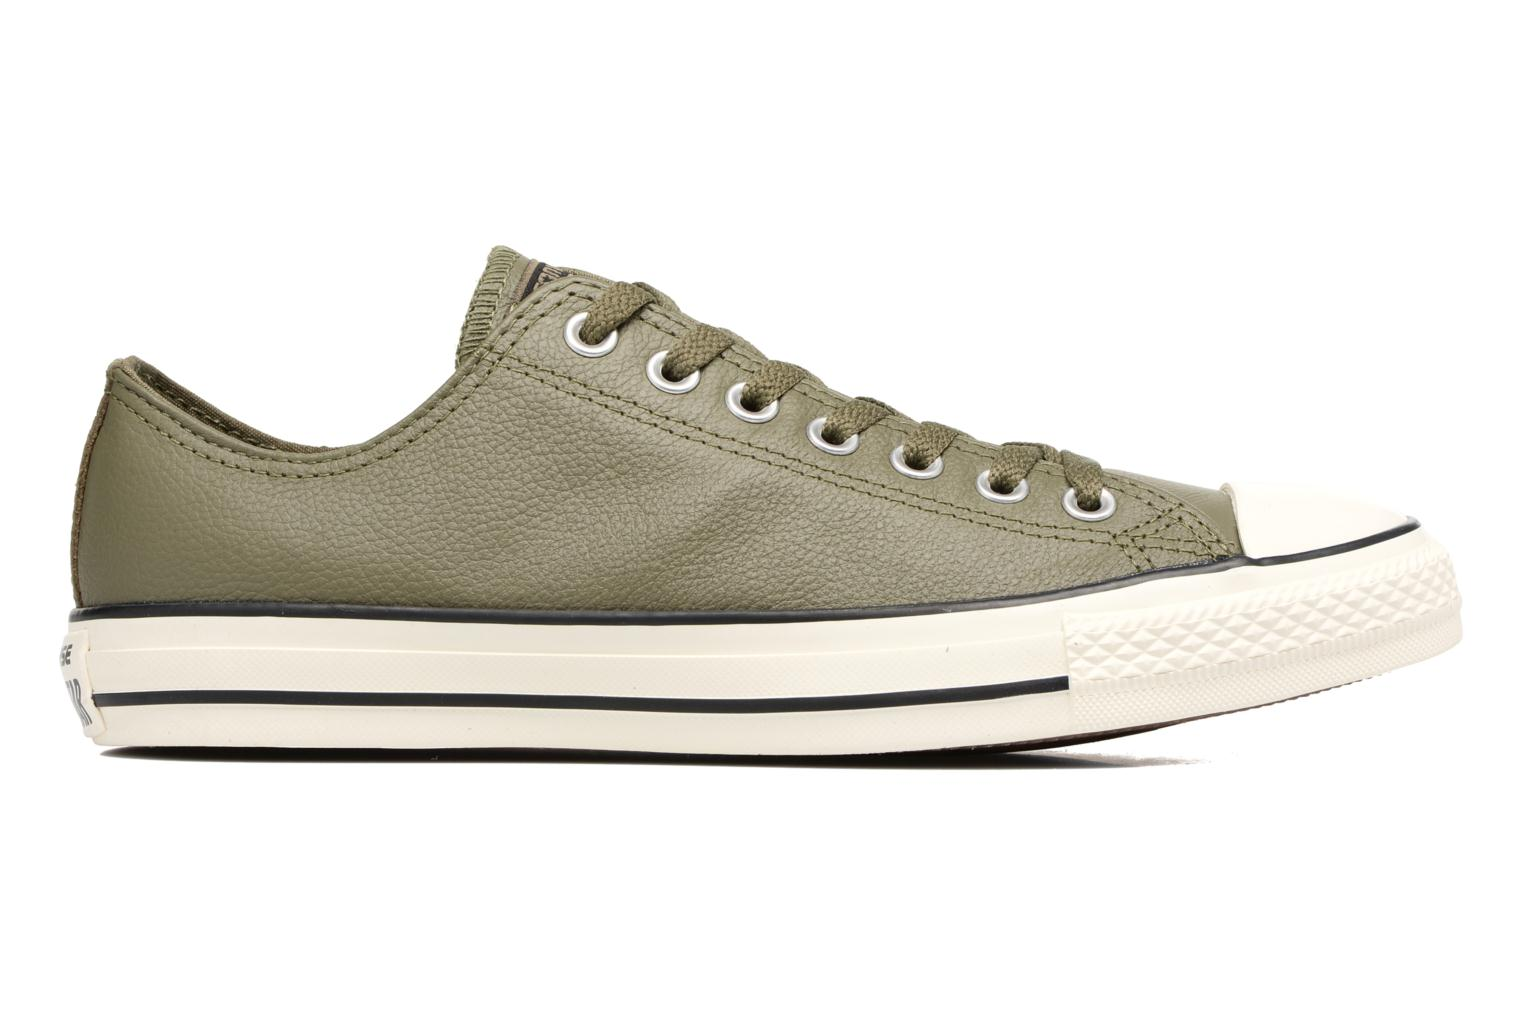 Chuck Taylor All Star Tumble Leather Ox Medium Olive/Egret/Black